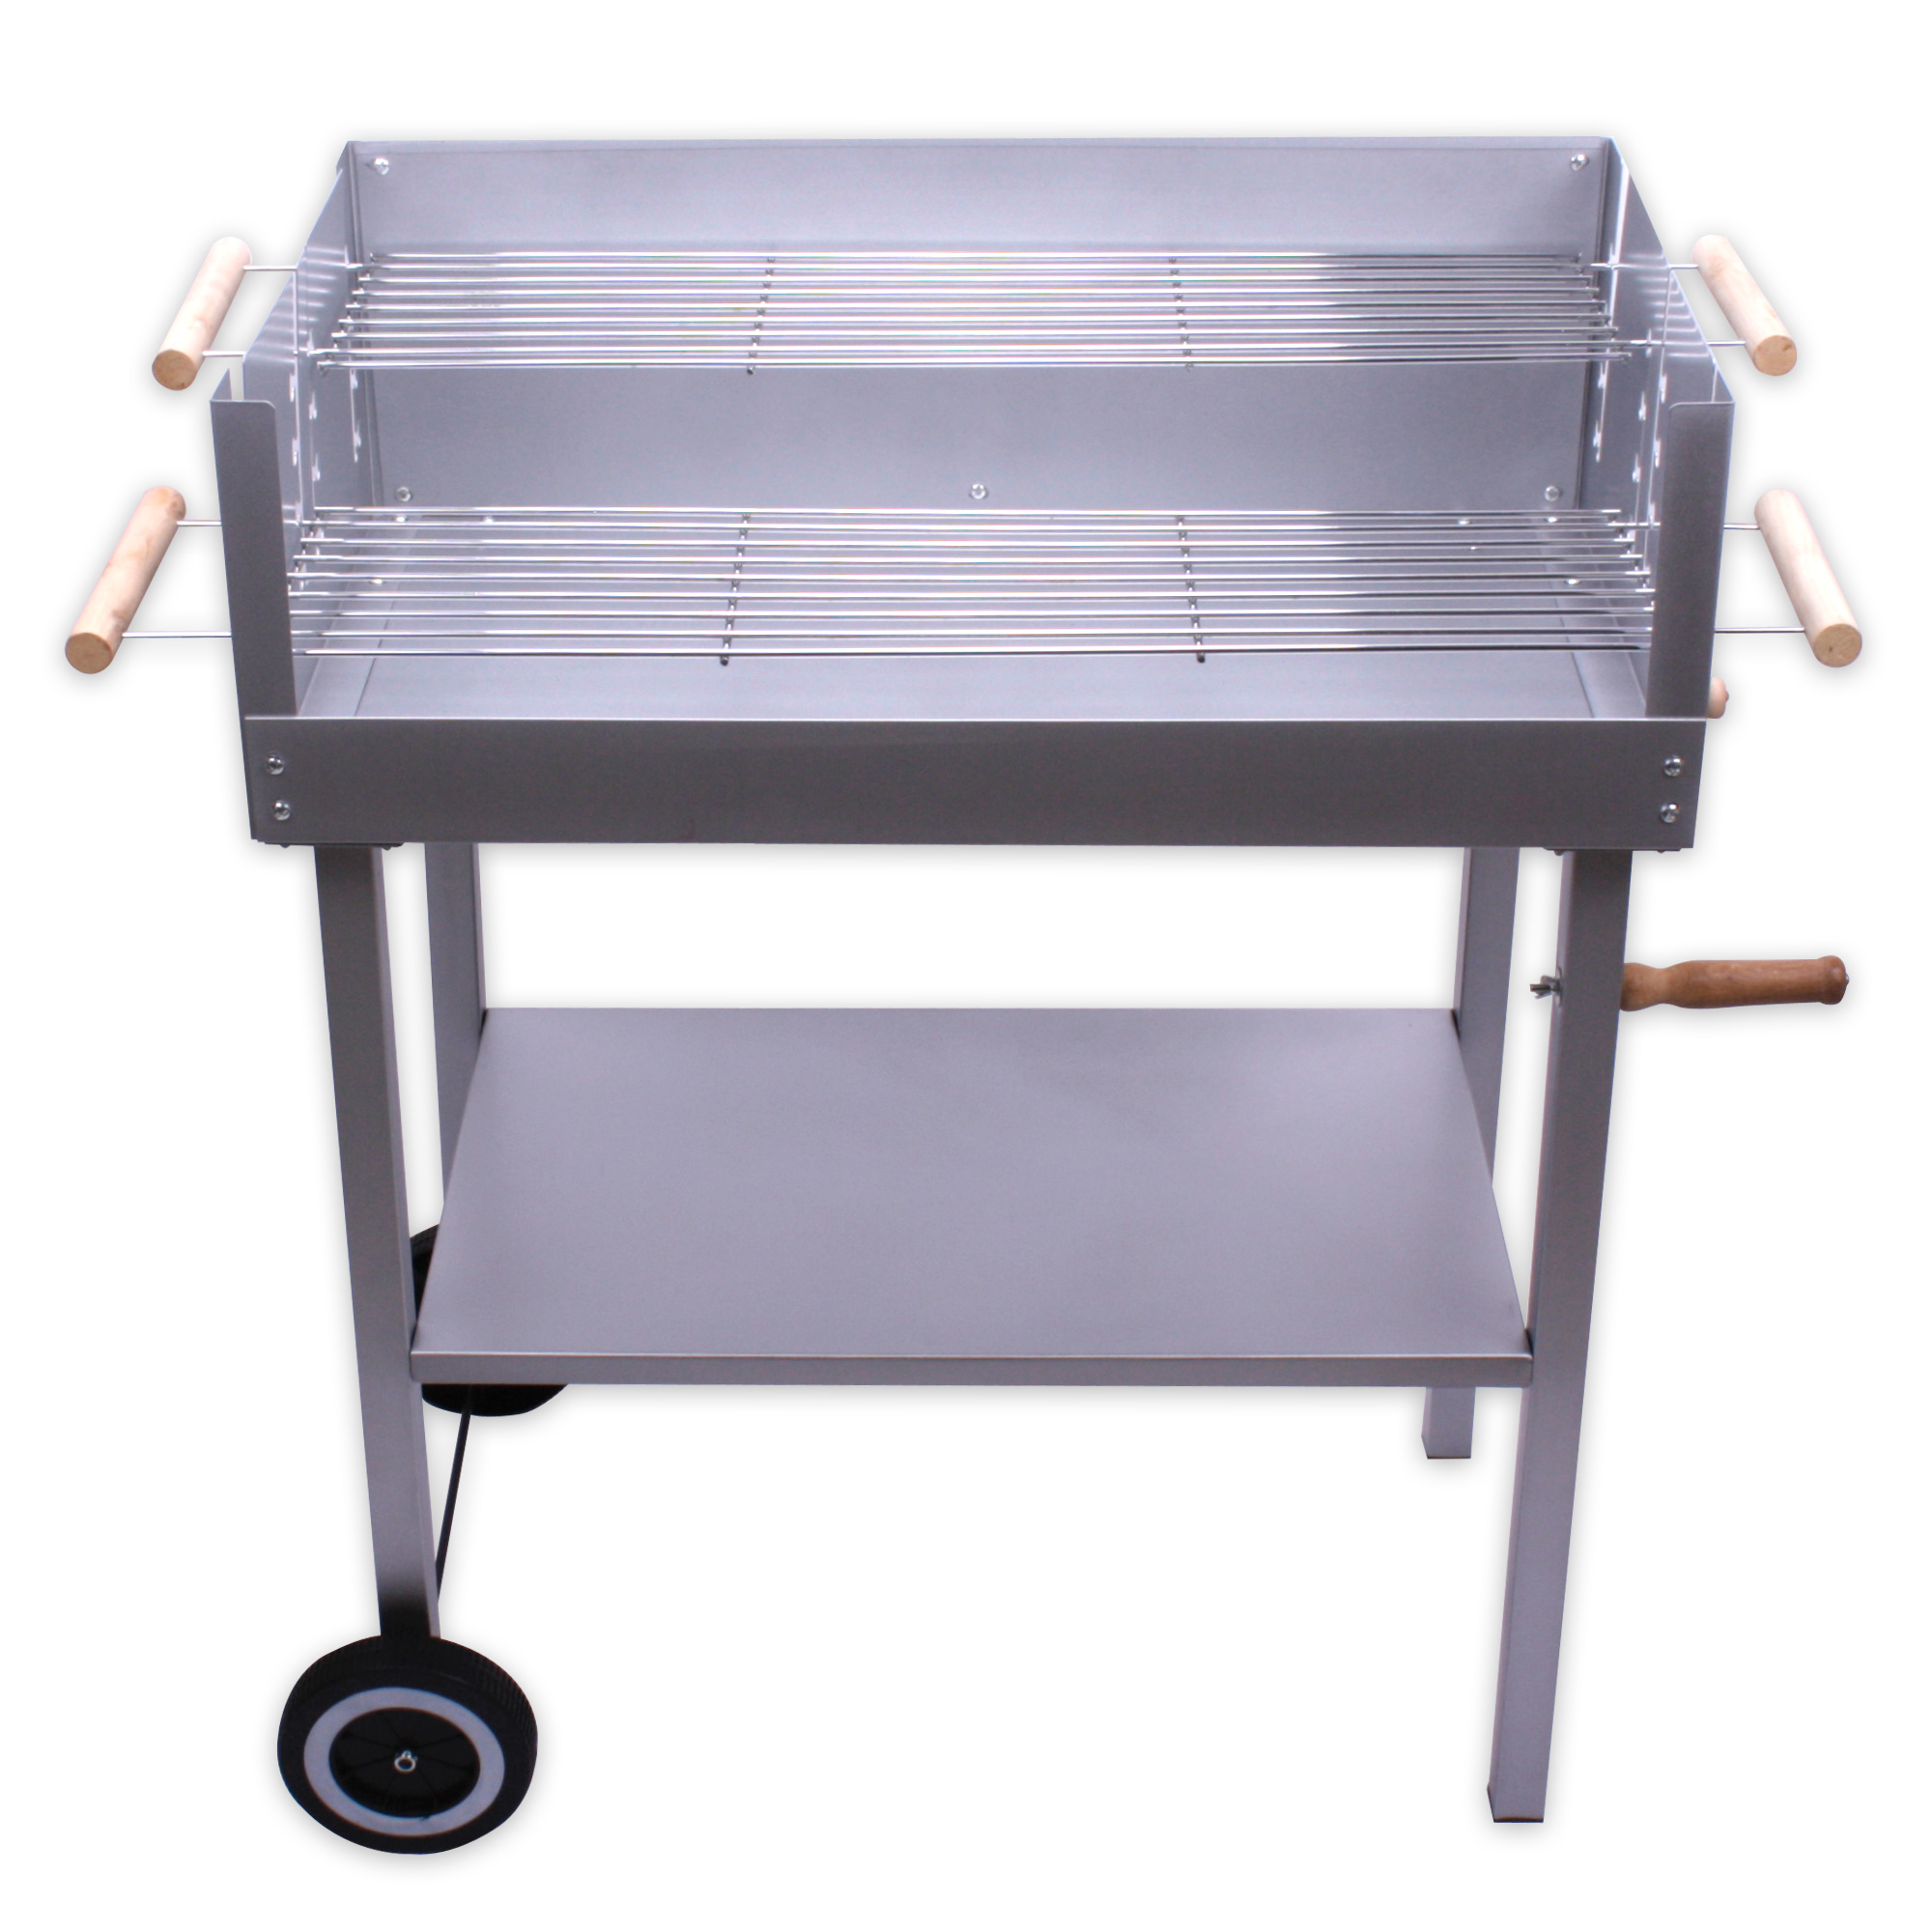 Barbecue grill 112 5 x 69 5 40 5 cm bbq charcoal 4 heat levels chrome plated - Grille barbecue 70 x 40 ...